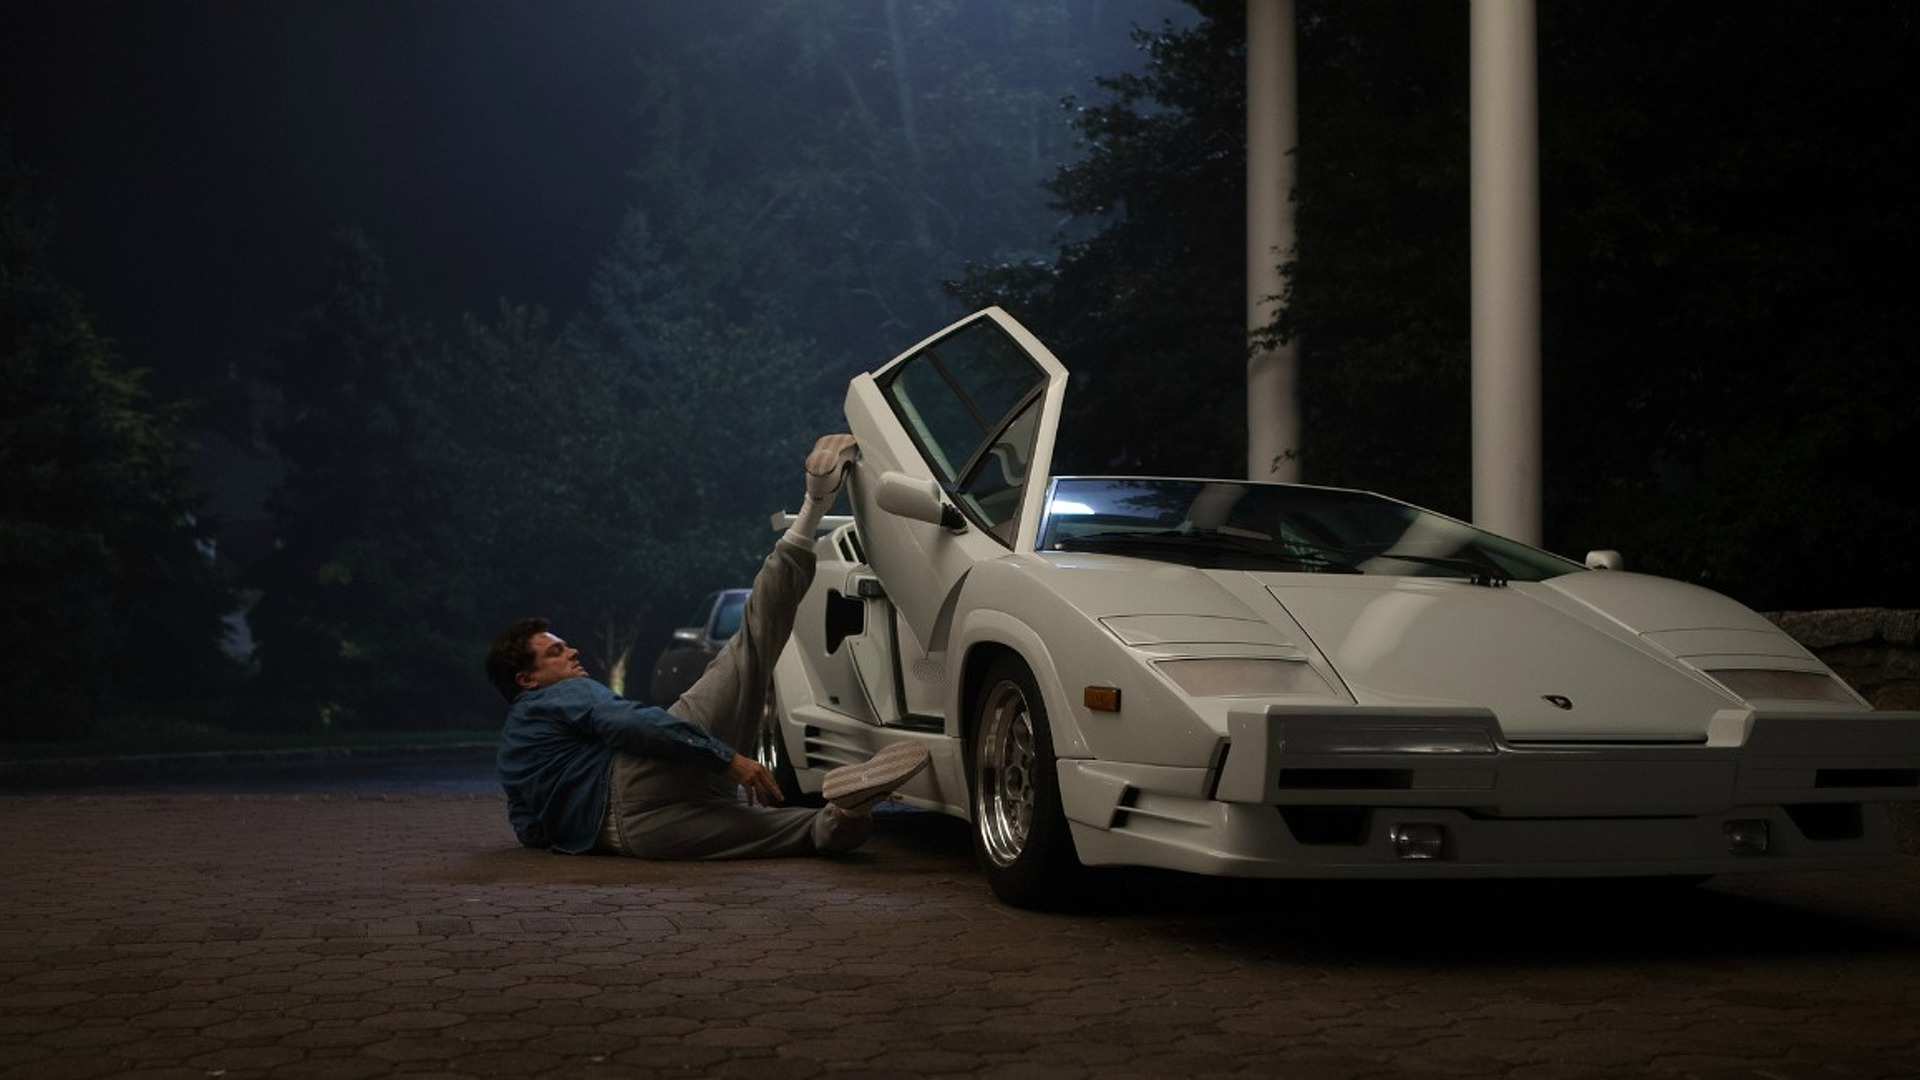 Wolf of Wall Street directors wrecked a real Lamborghini Countach ...